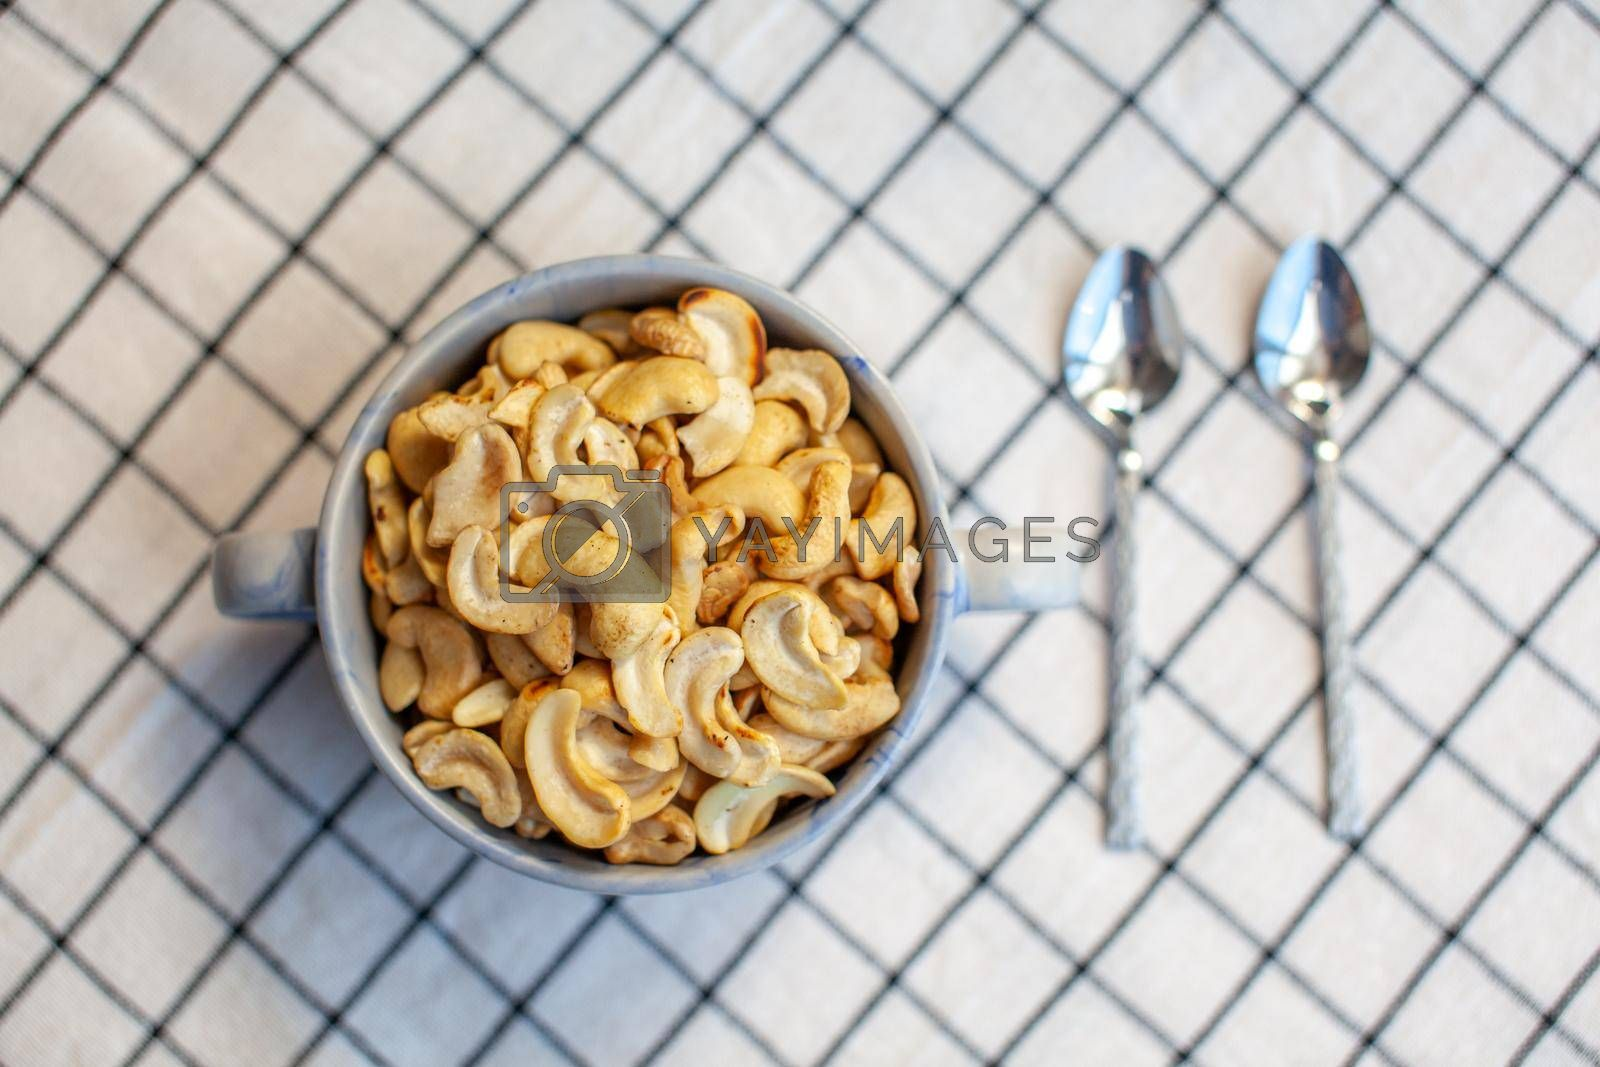 A plate of cashew nuts on a nice napkin and two spoons next to it. Delicious and healthy food for a snack. There is a place for the text.